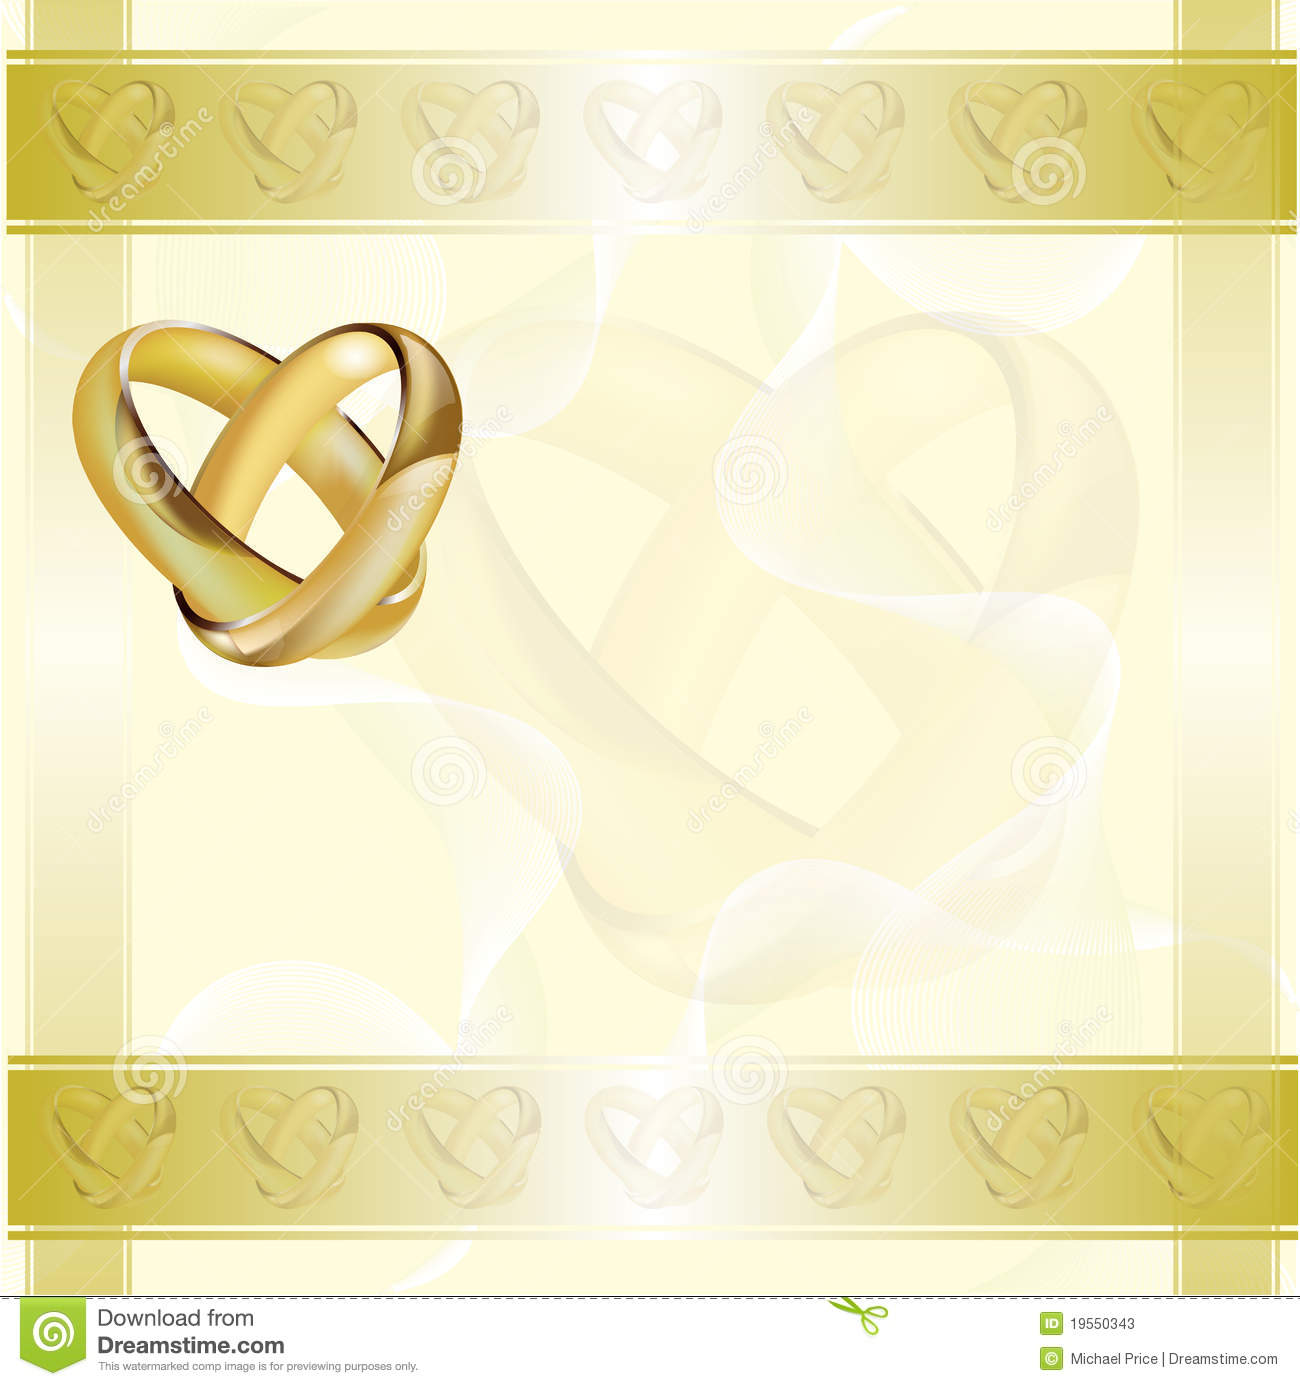 A Wedding Invitation Card With Gold Rings Stock Vector